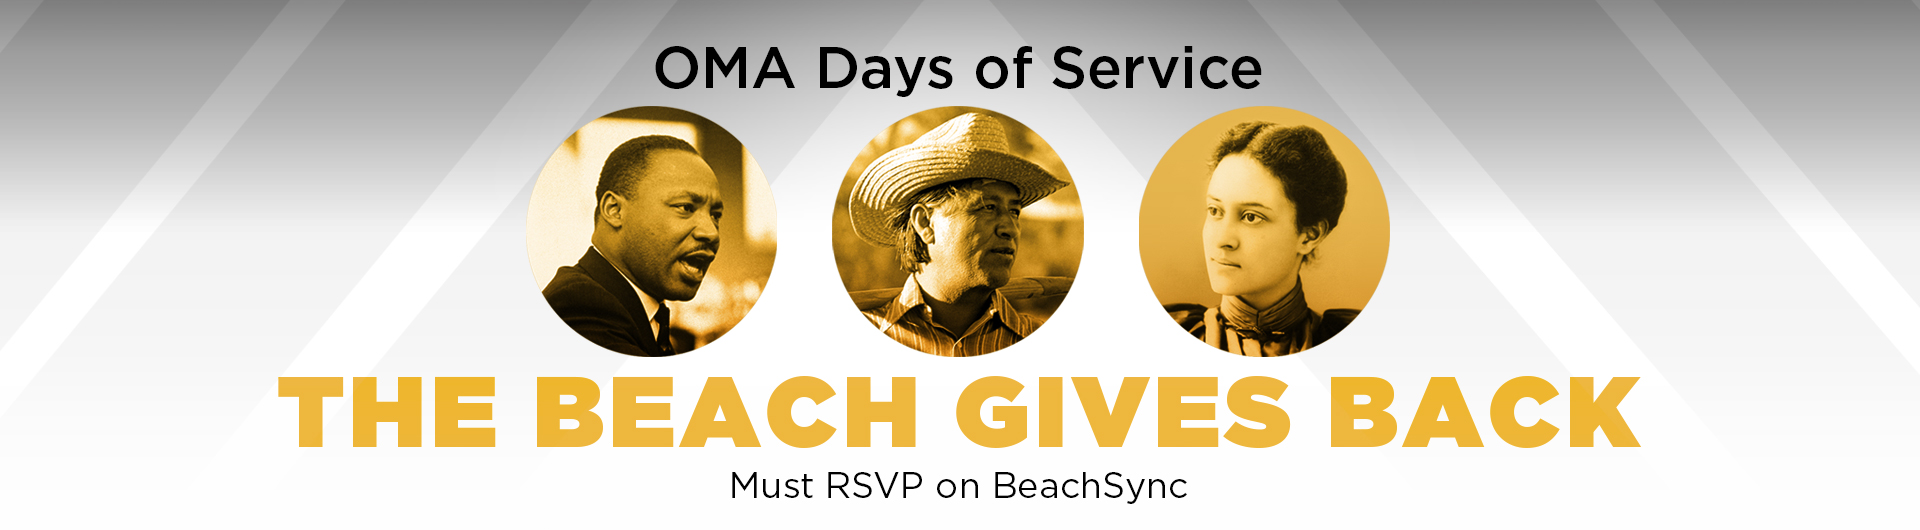 OMA Days of Service - The Beach Gives Back - Must RSVP on BeachSync